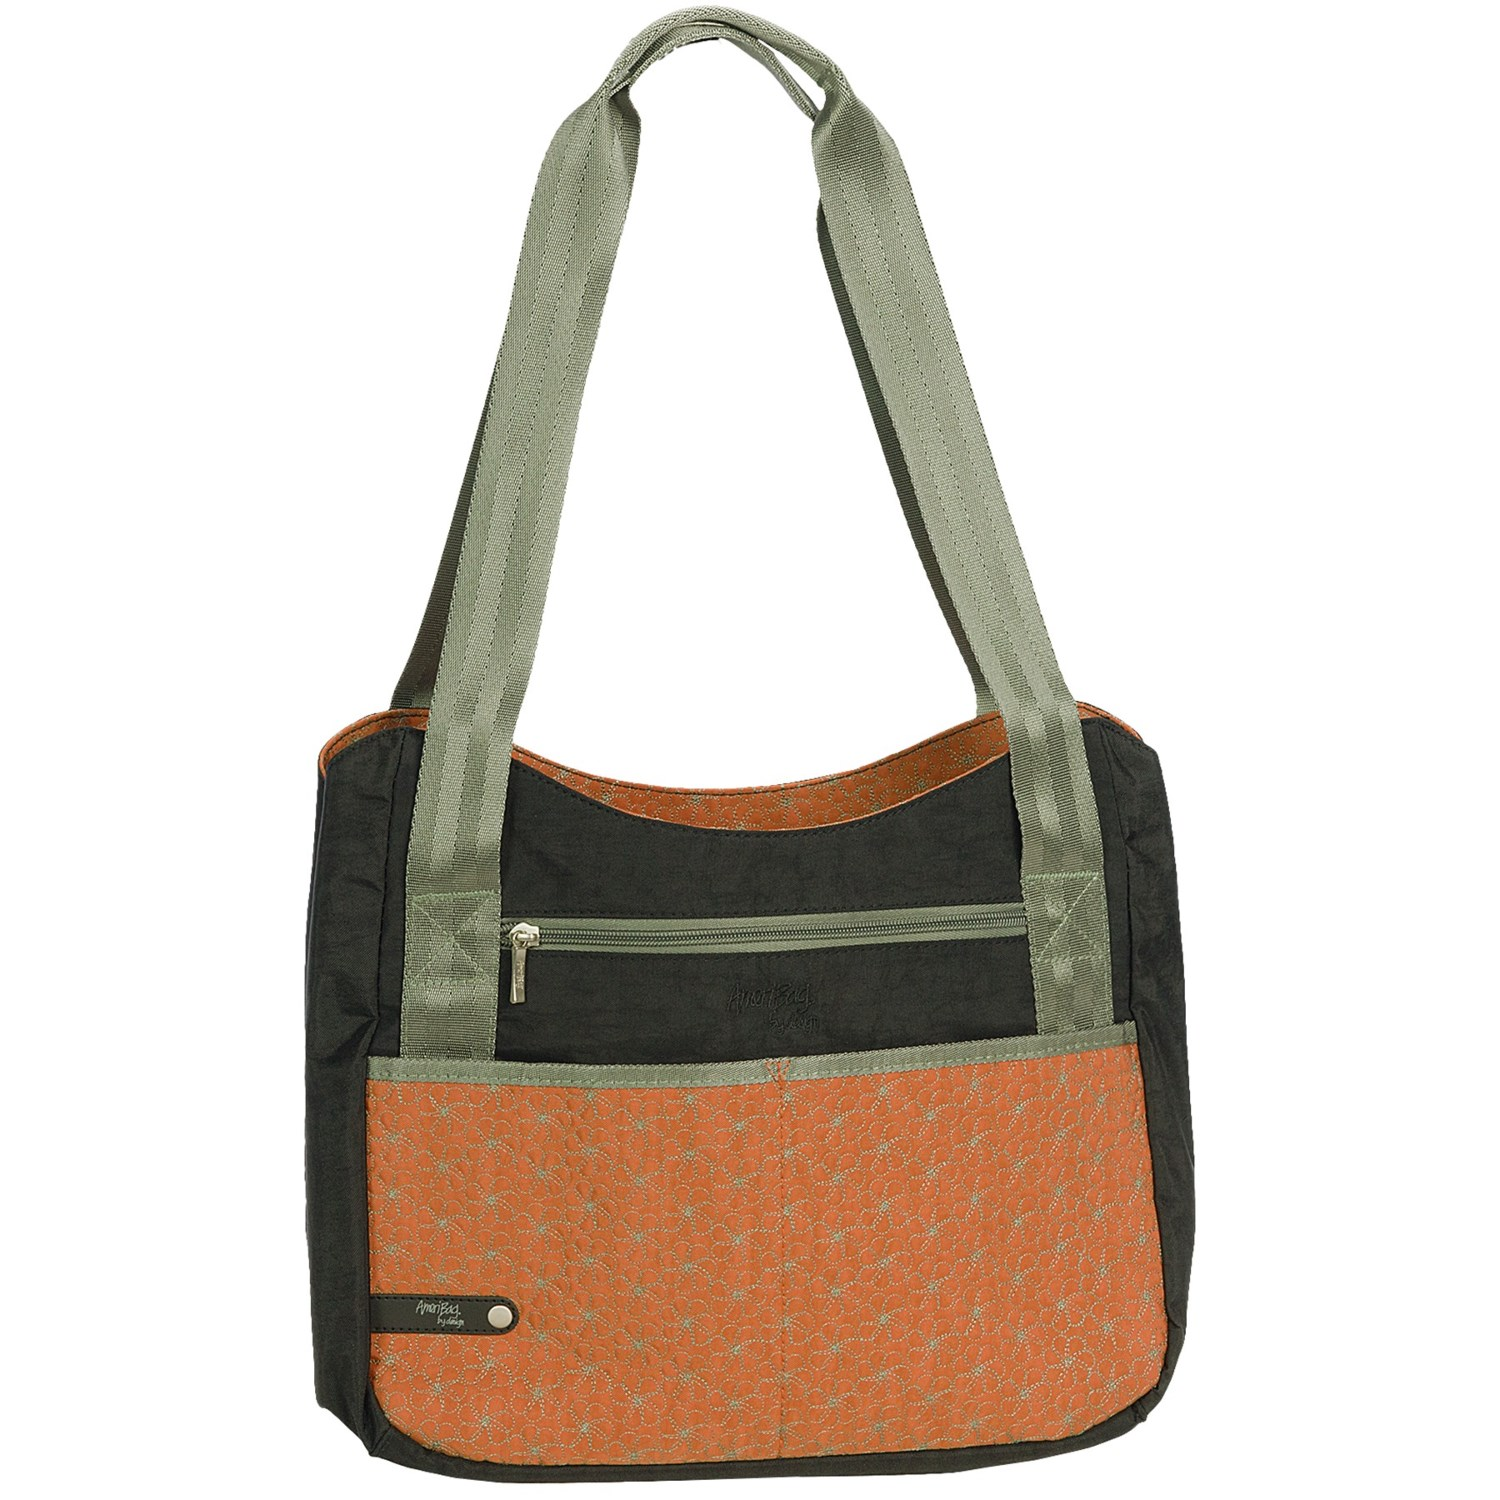 AmeriBag Jazzmin Computer Tote Bag - Up to 13 Laptop (For Women